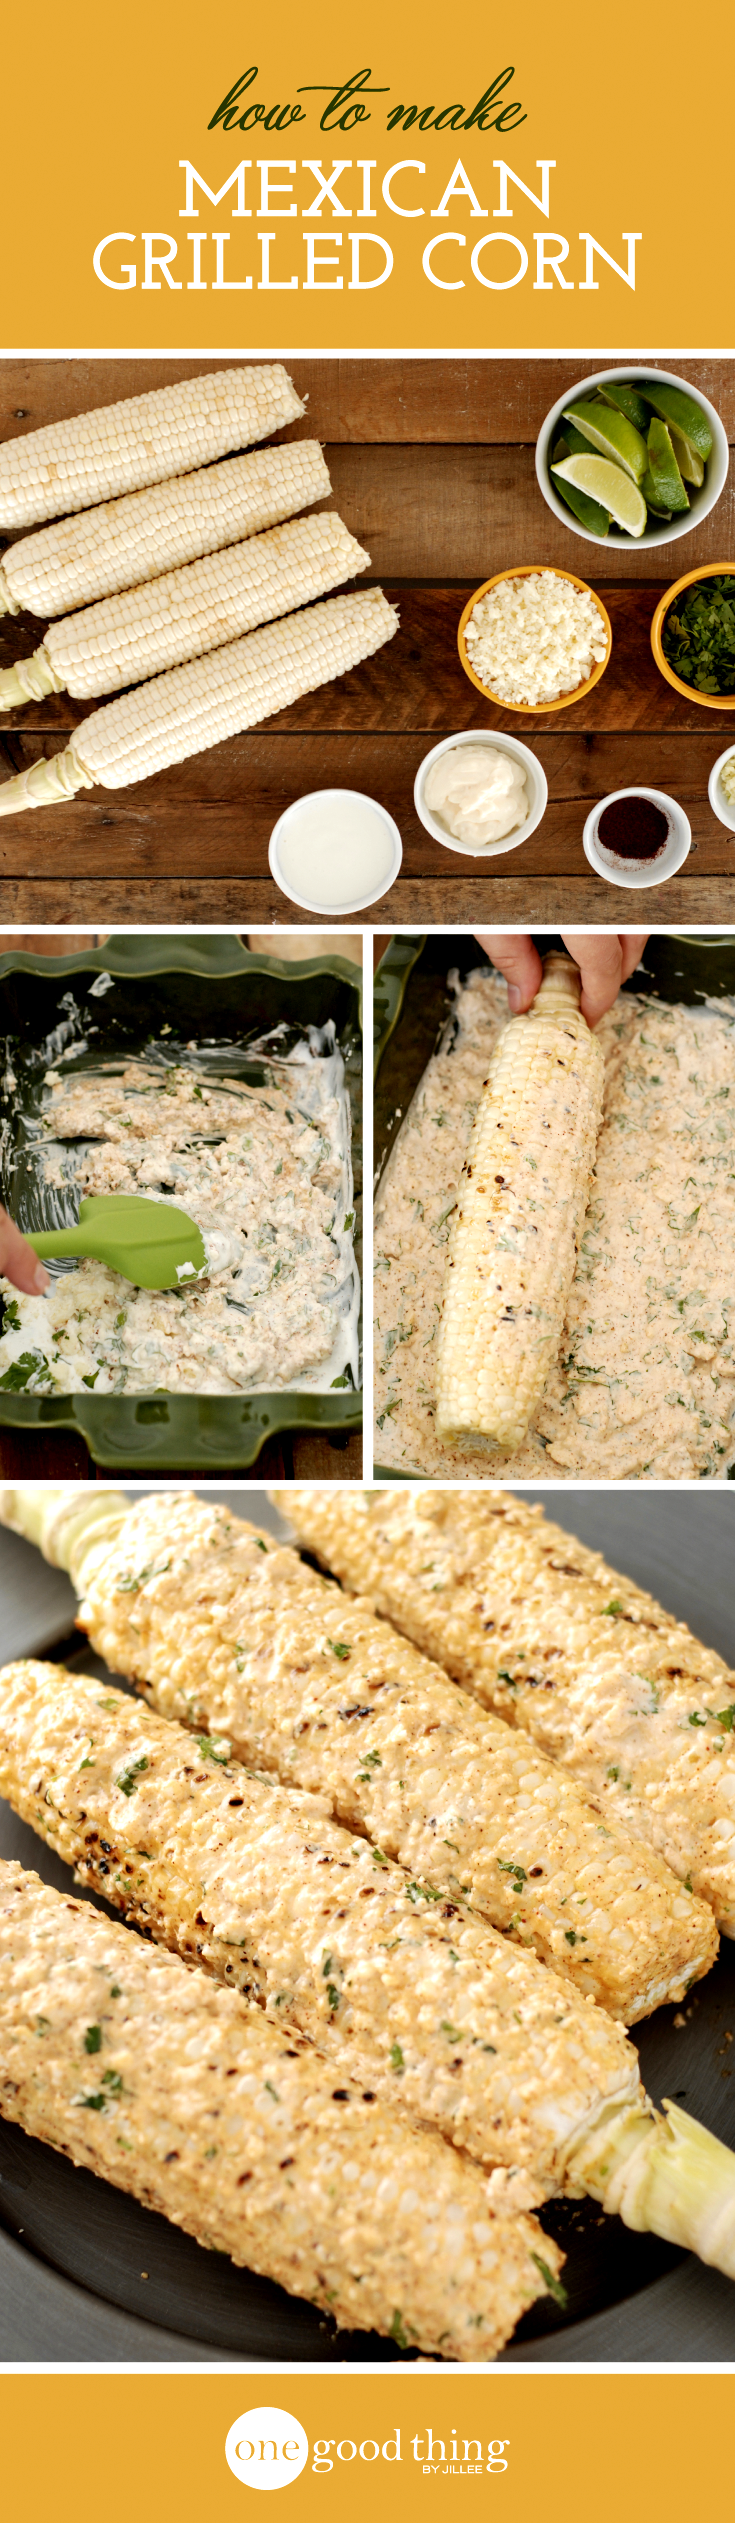 How to make mexican grilled street corn mexican grilled corn how to make mexican grilled street corn ccuart Gallery